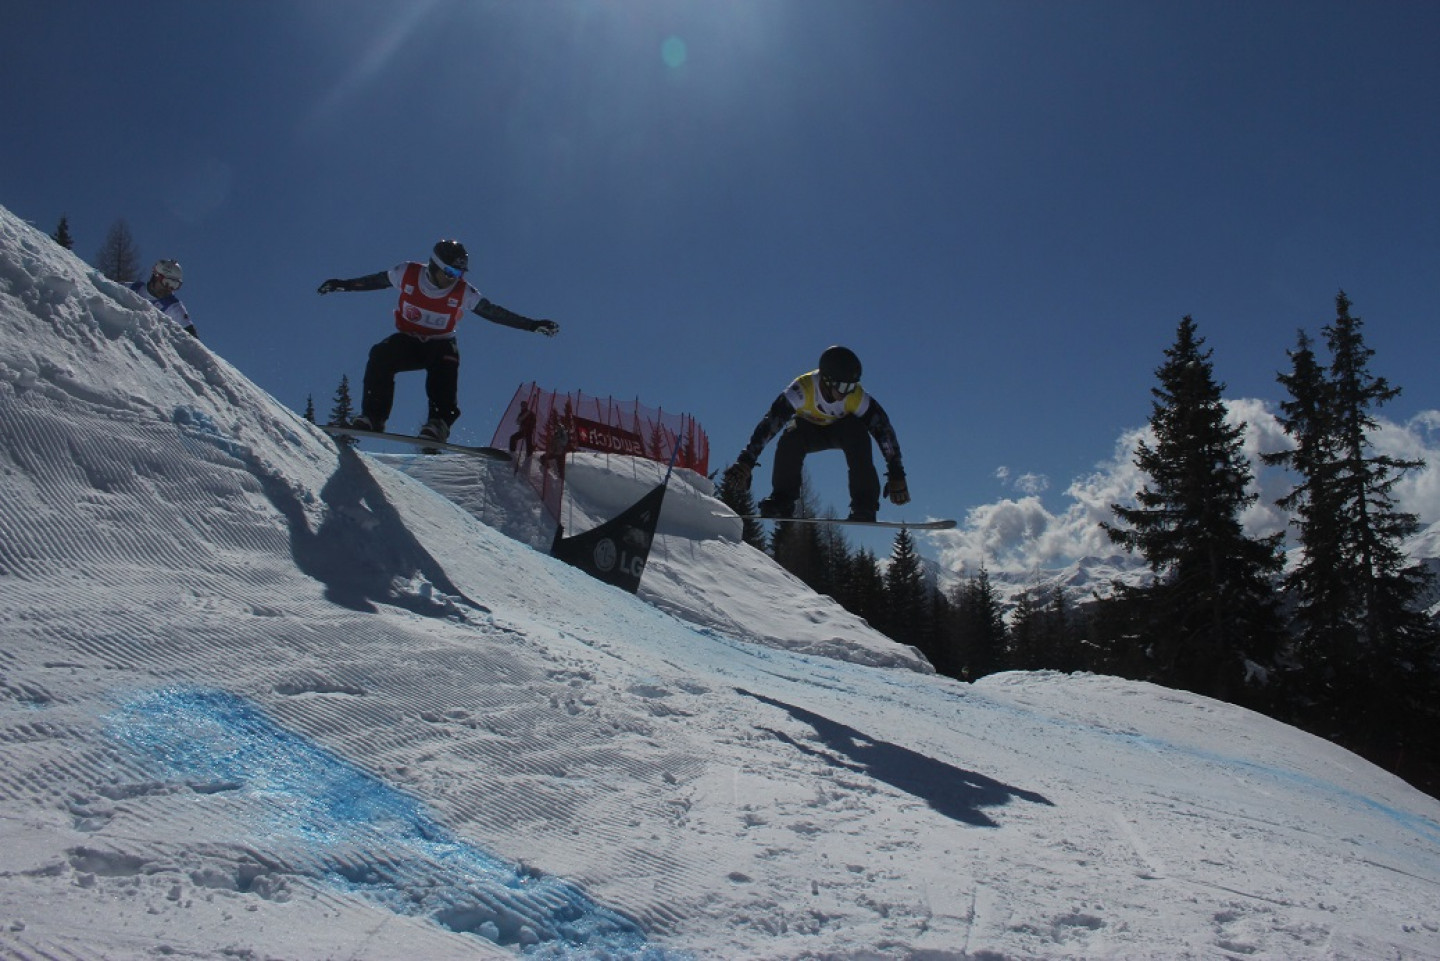 Snowboard World cup competition in Valmalenco